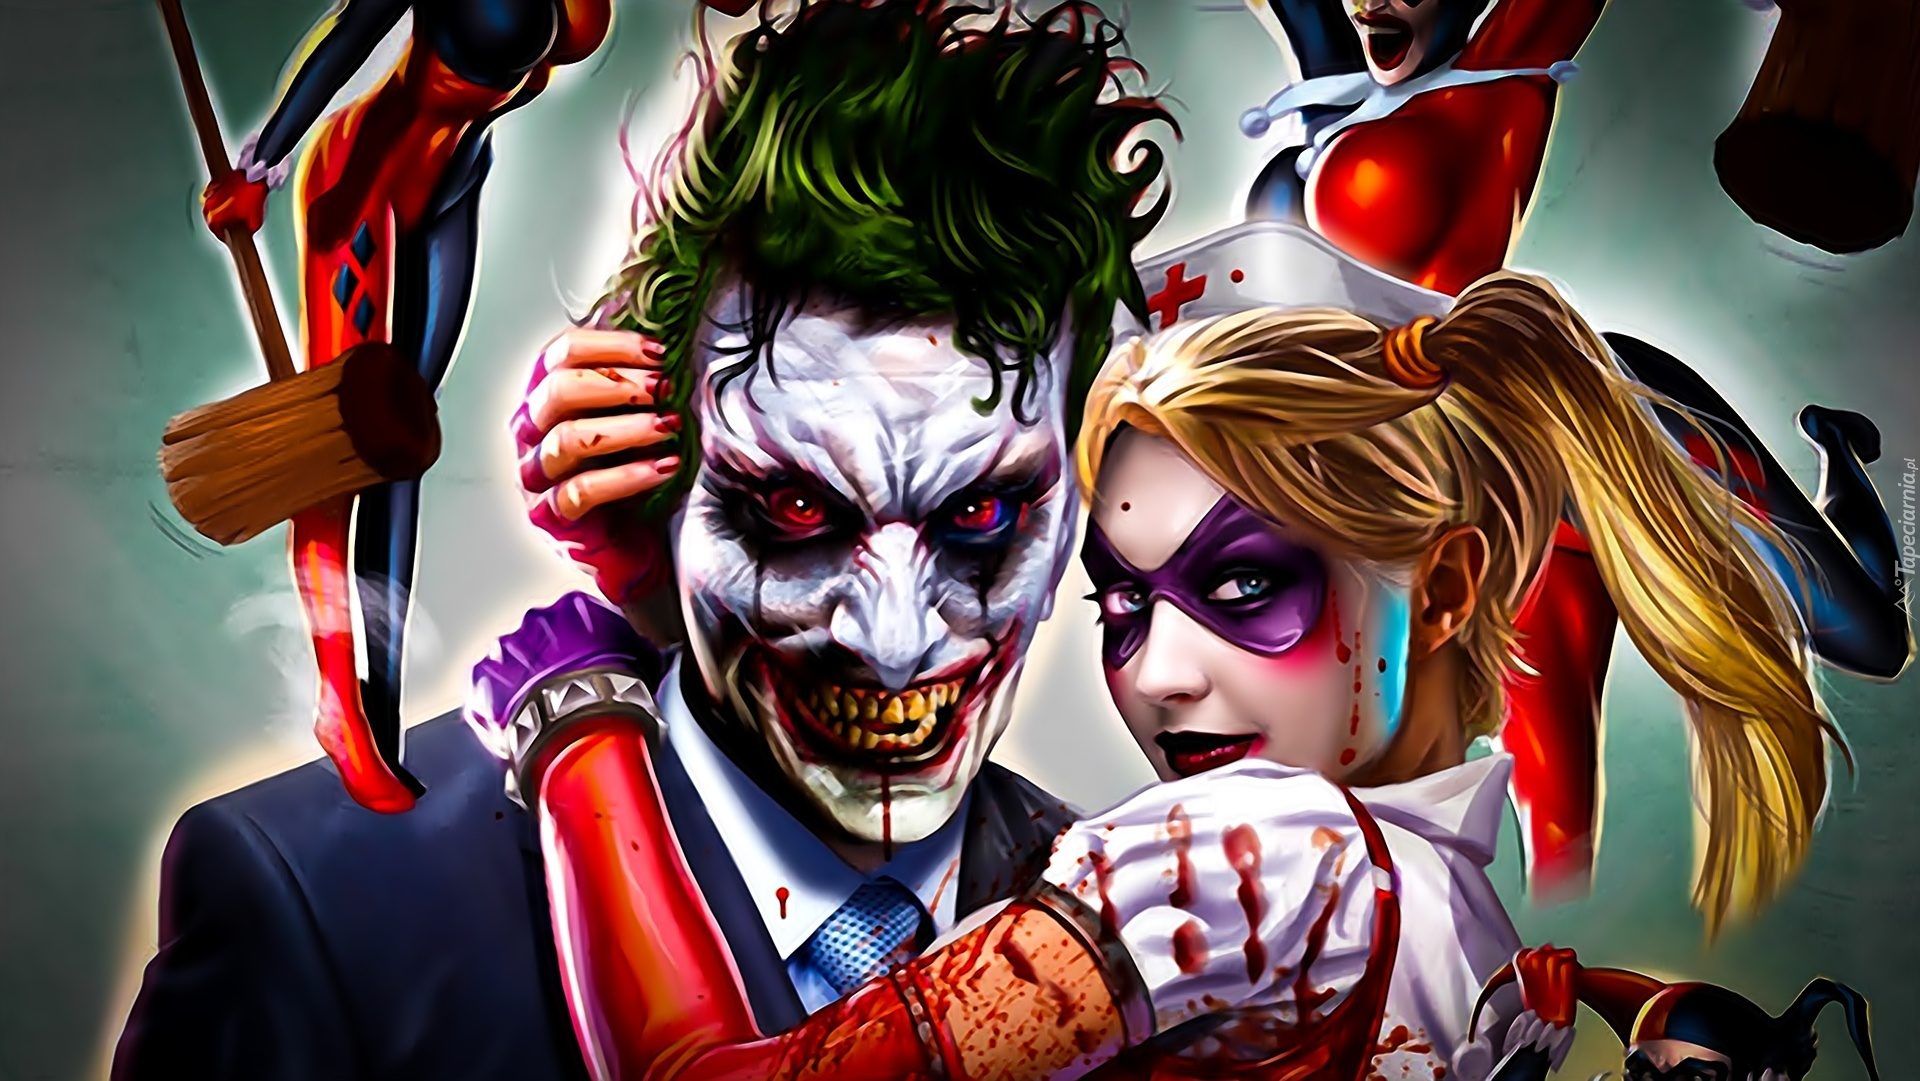 Tapety joker and harley quinn for Joker immagini hd